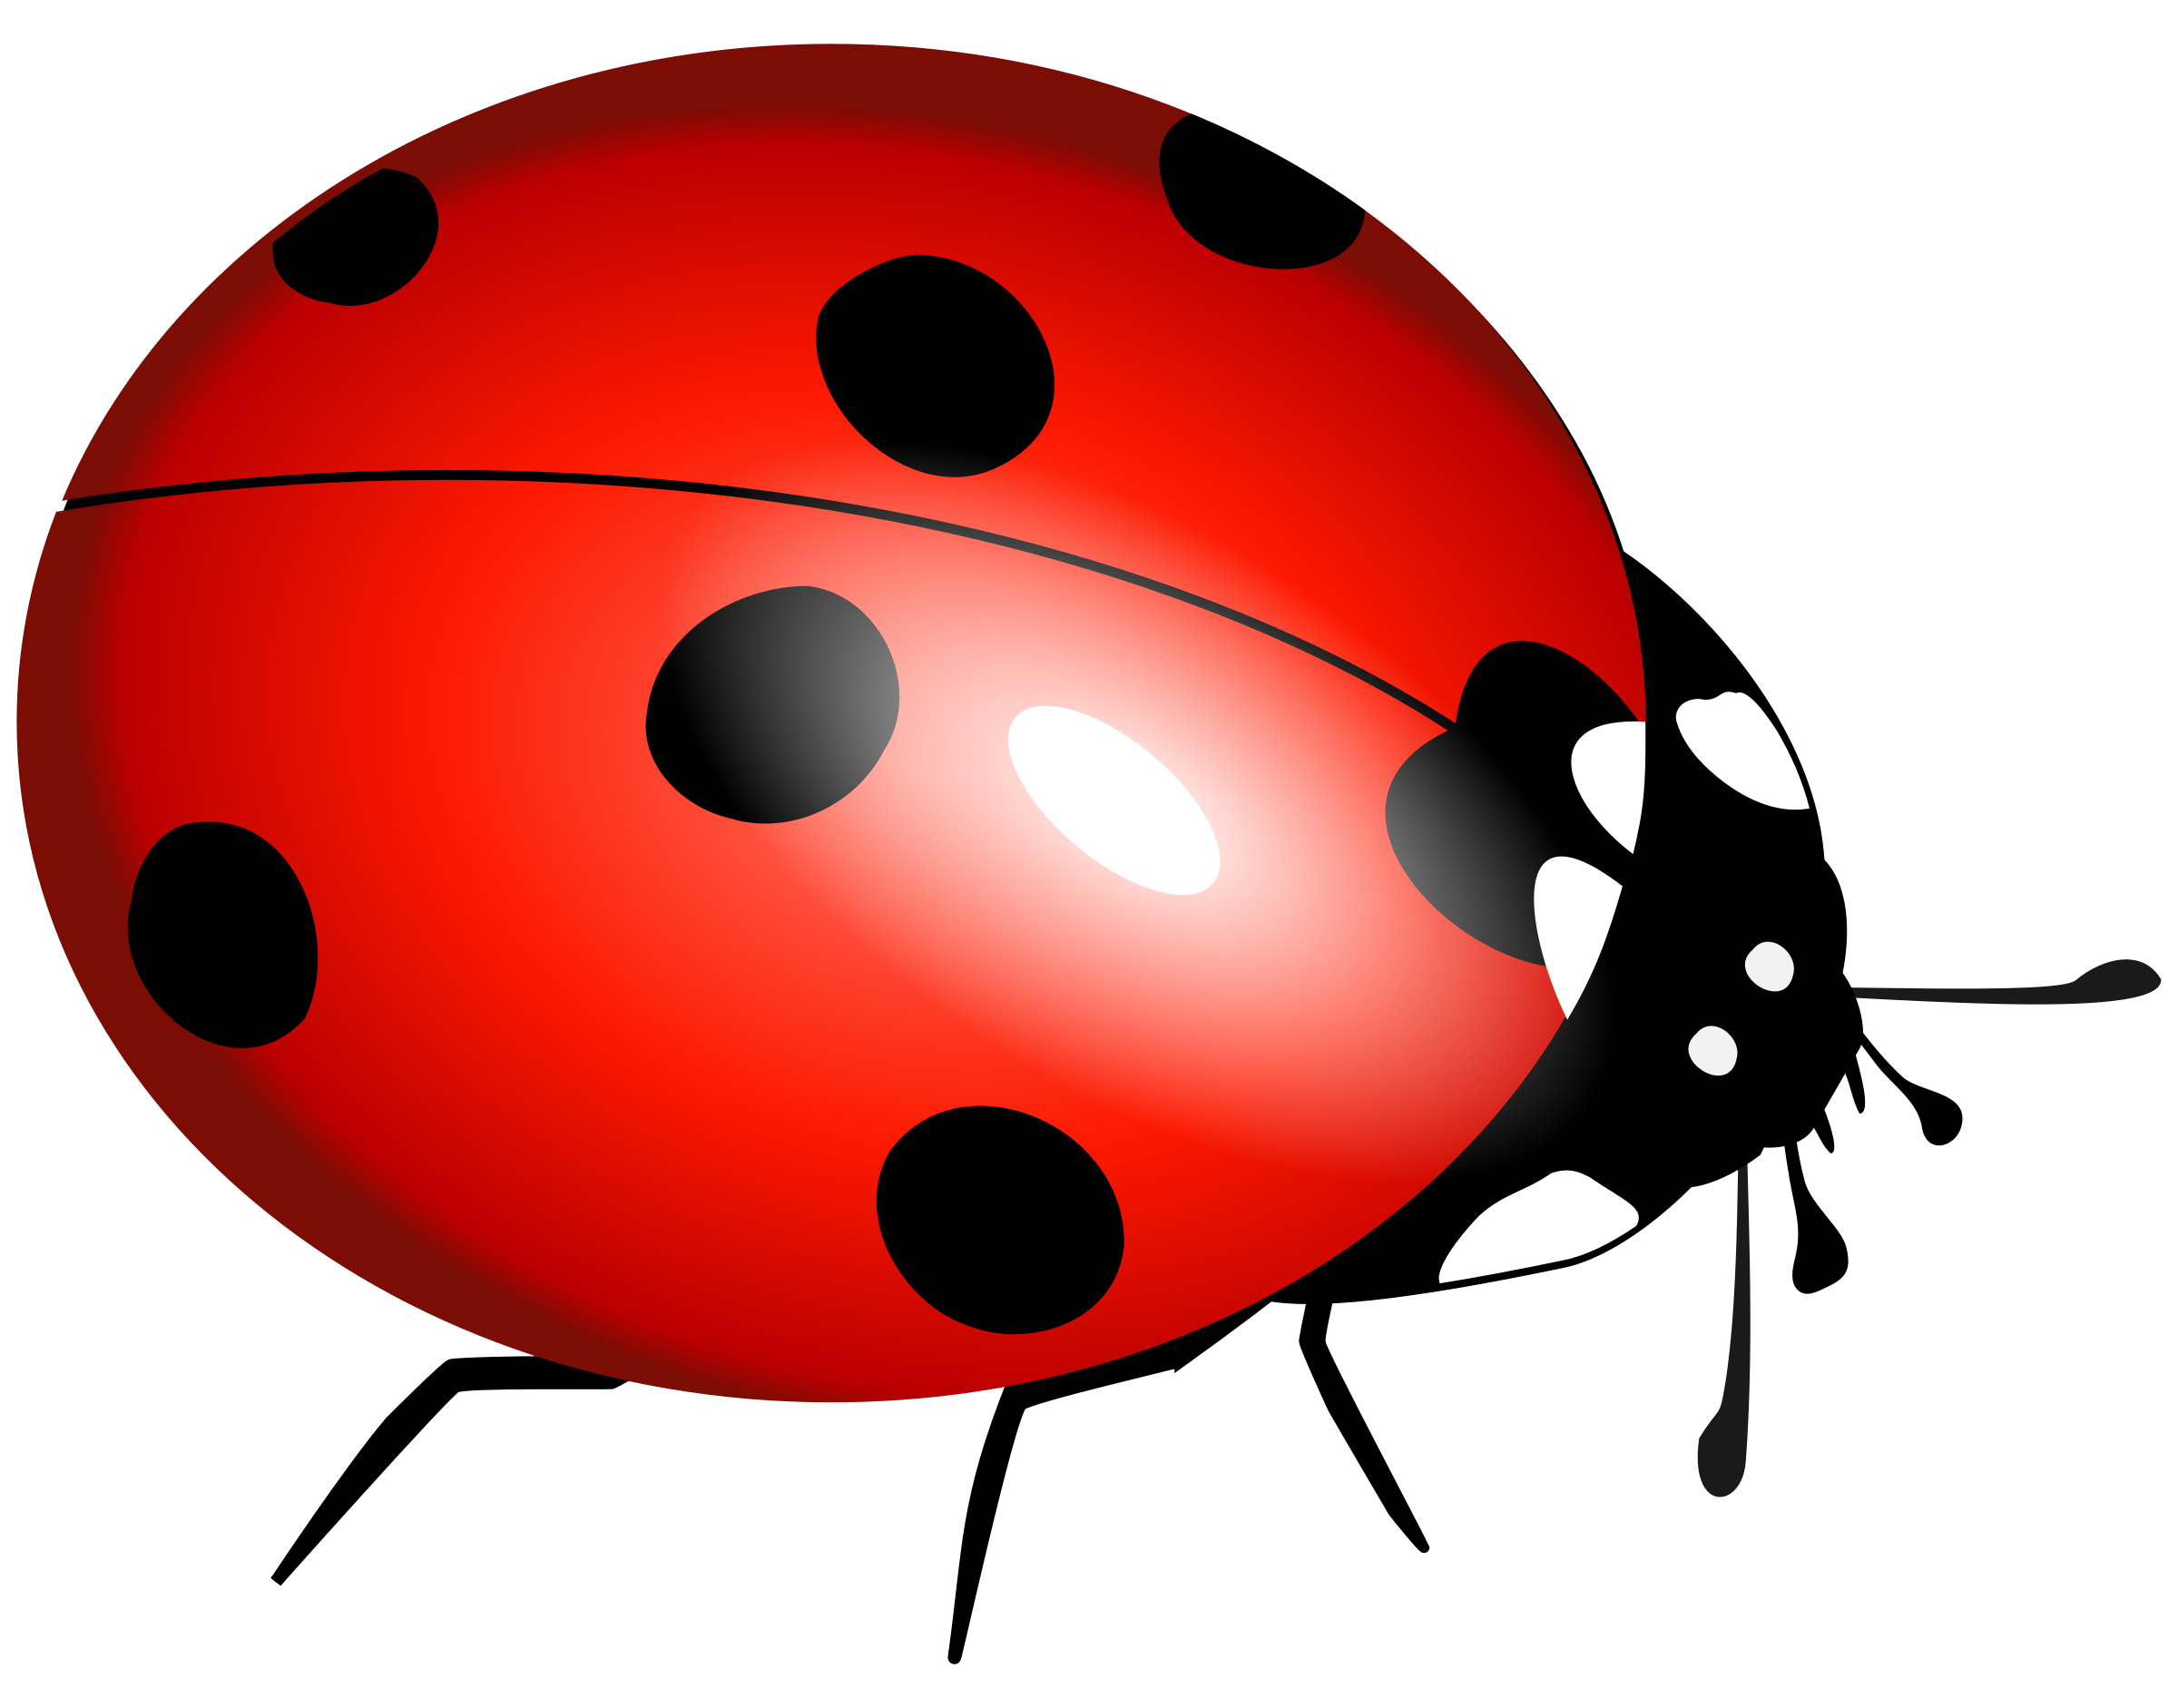 Heart clipart exercising png royalty free library Ladybug Flying Clipart | Clipart Panda - Free Clipart Images ... png royalty free library